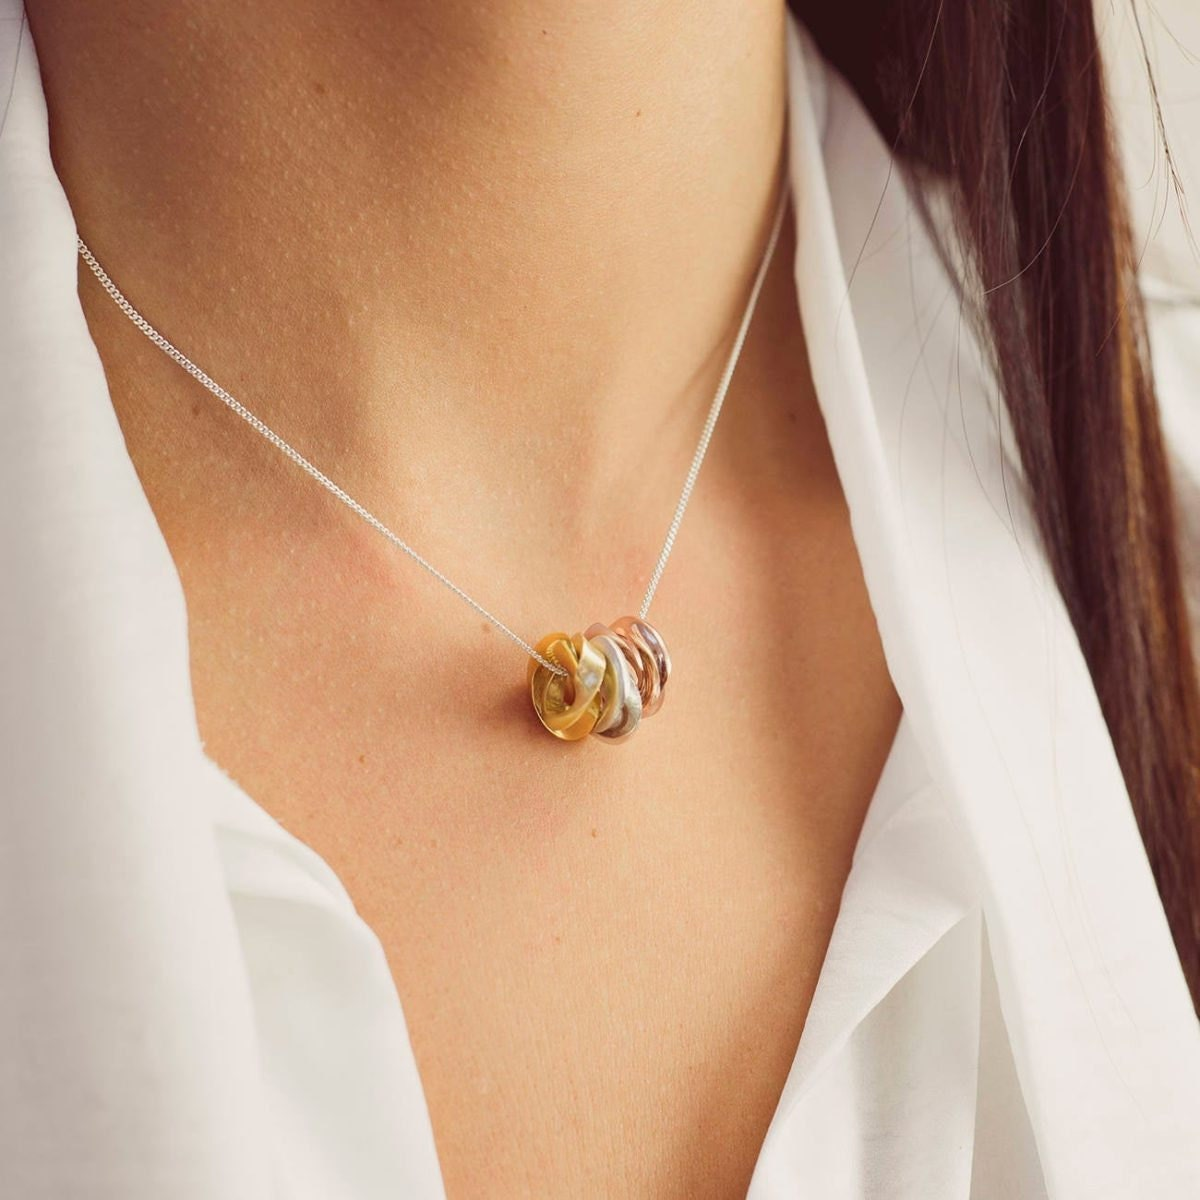 Personalized silver, yellow gold, and rose gold mobius necklace from Soremi Jewellery